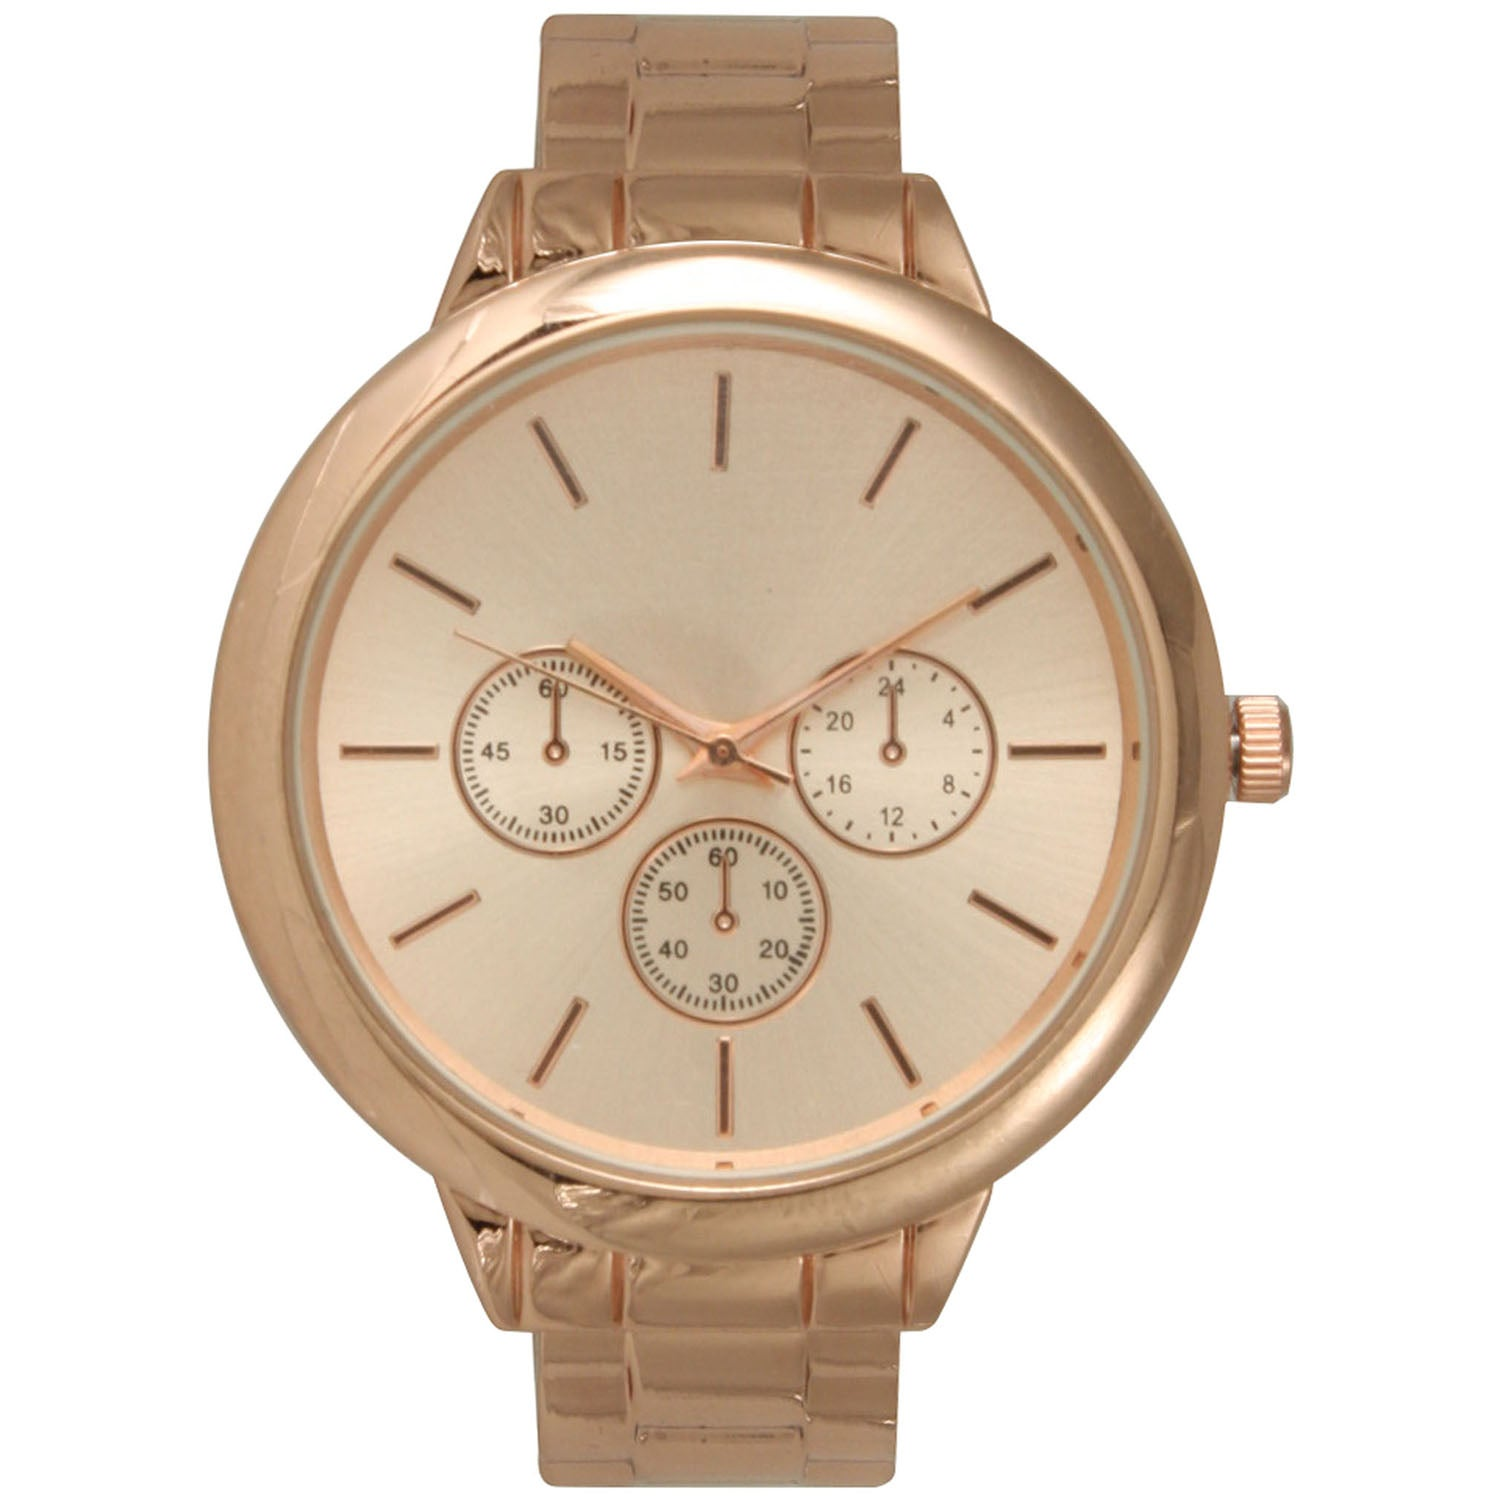 Olivia Pratt Women's Cute Classic 3-dial Watch